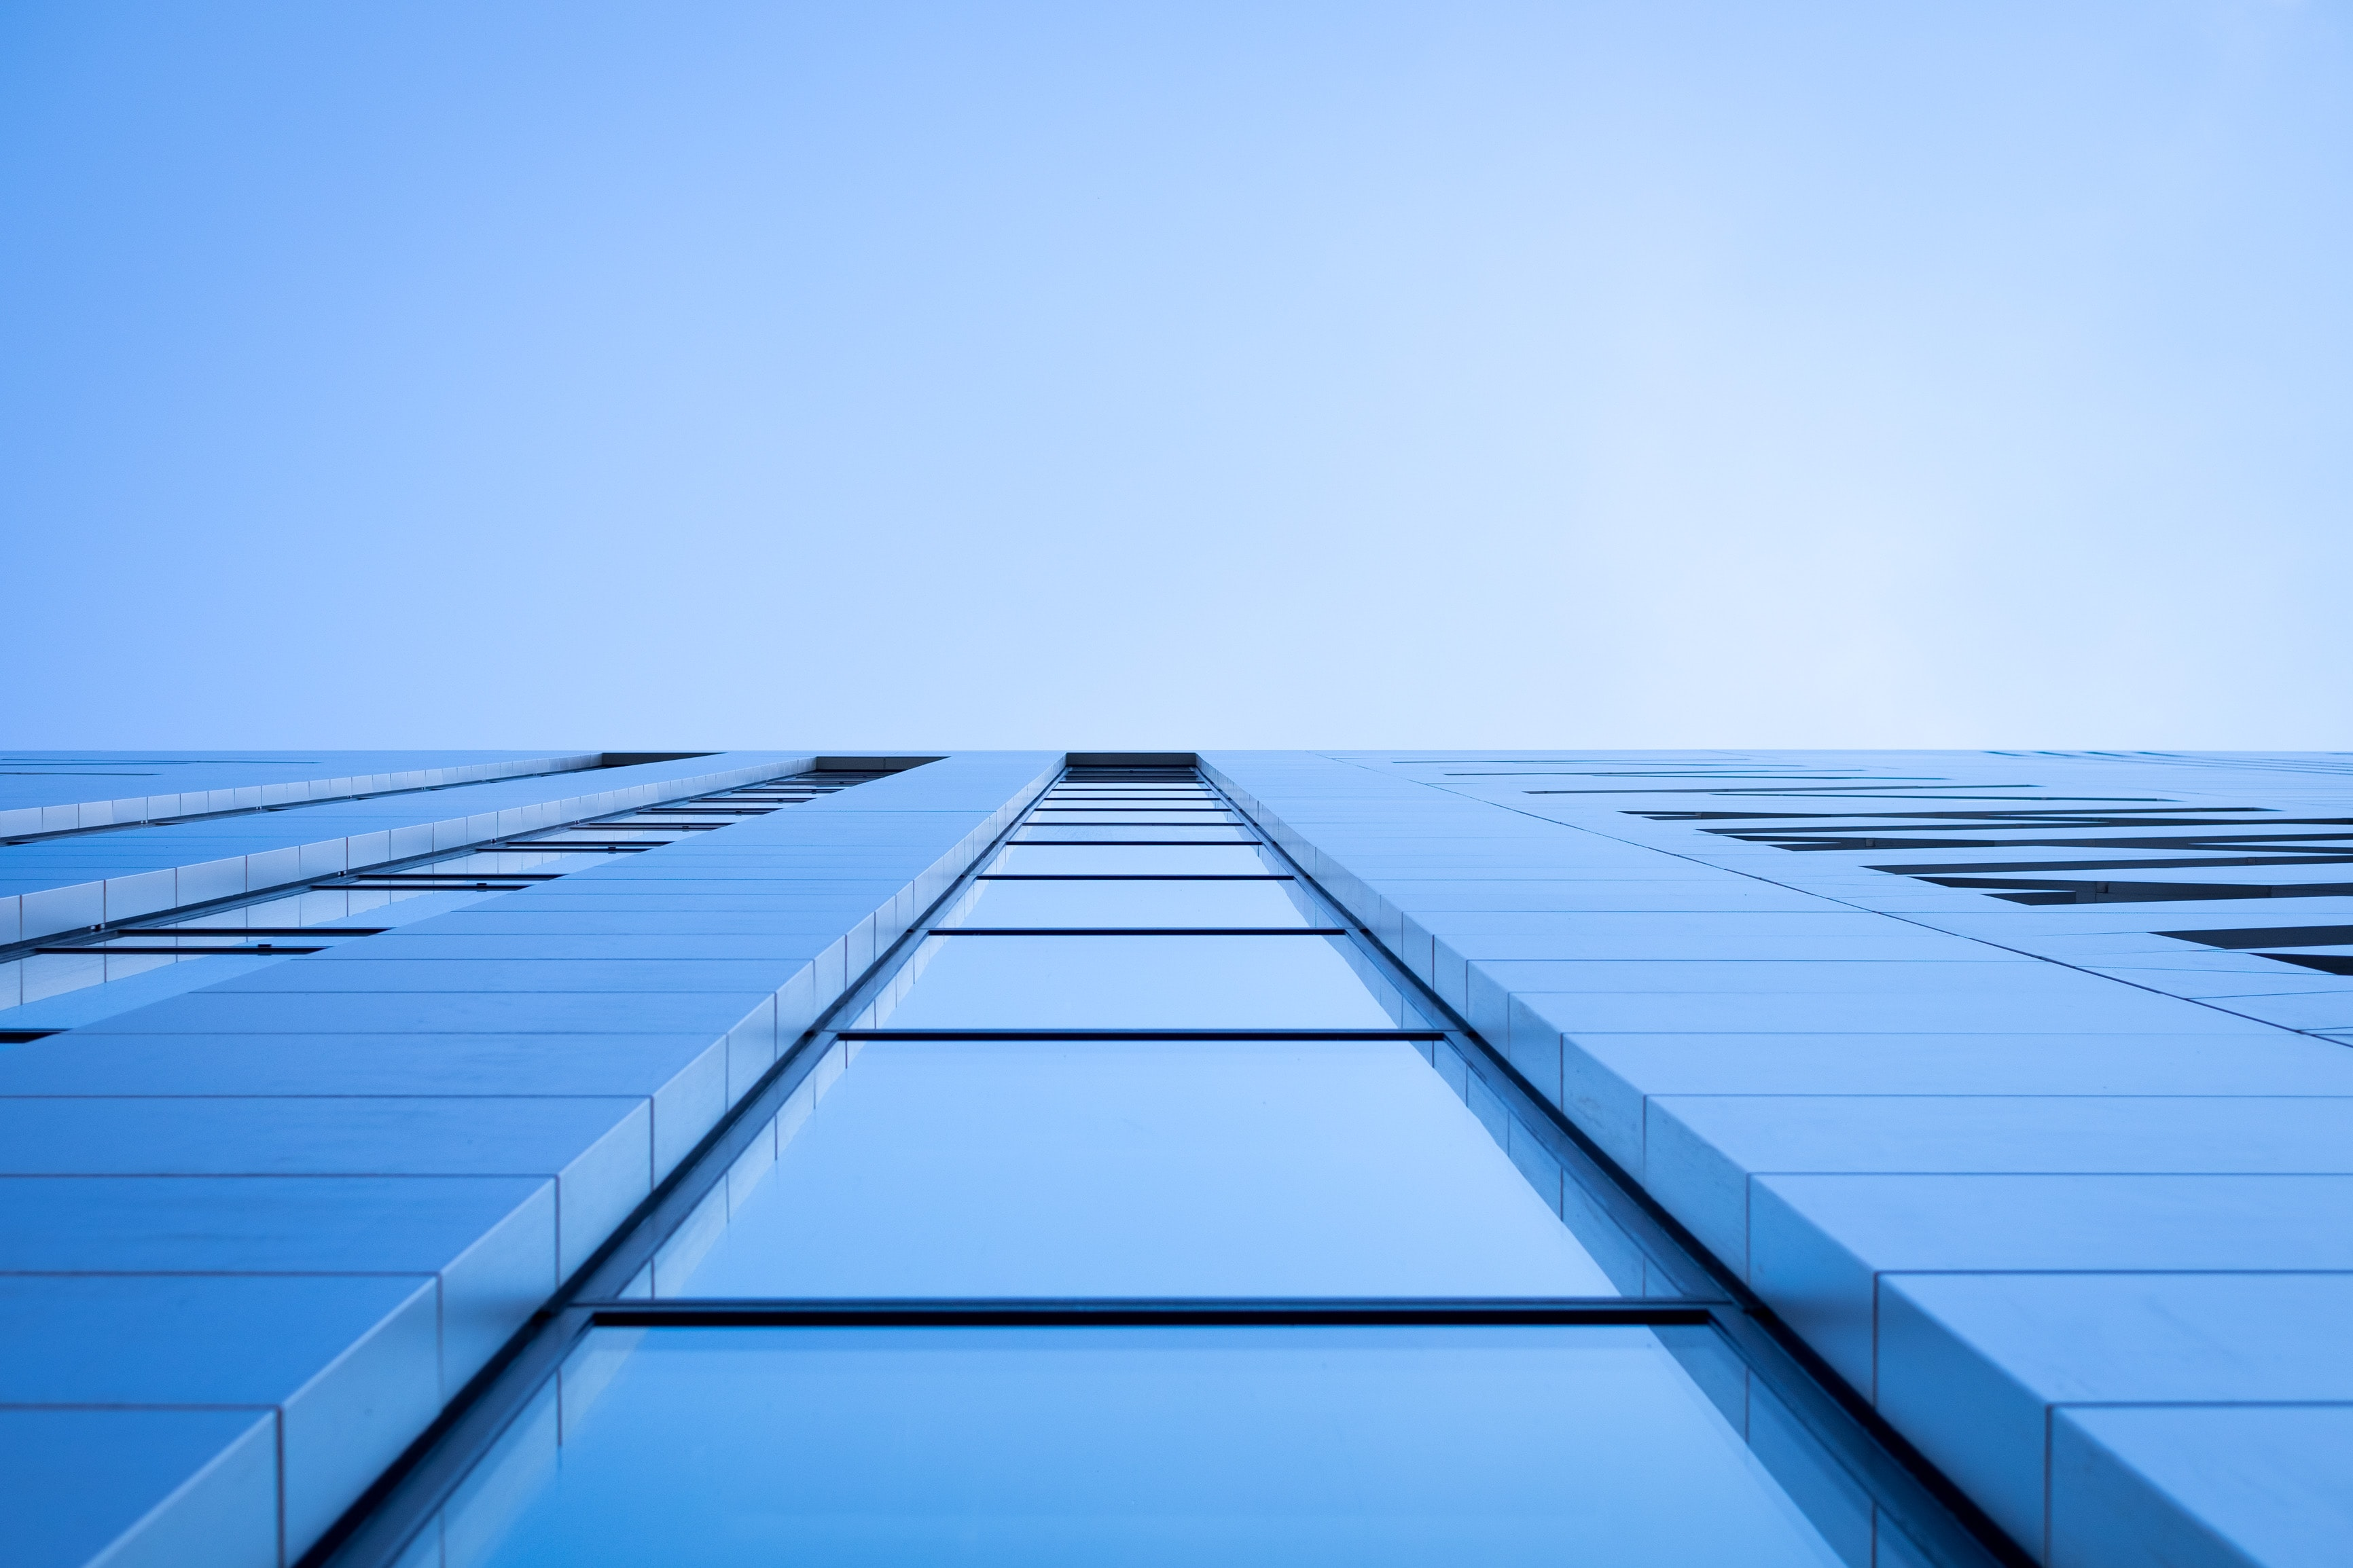 A low-angle shot of a the windows in a tall office building